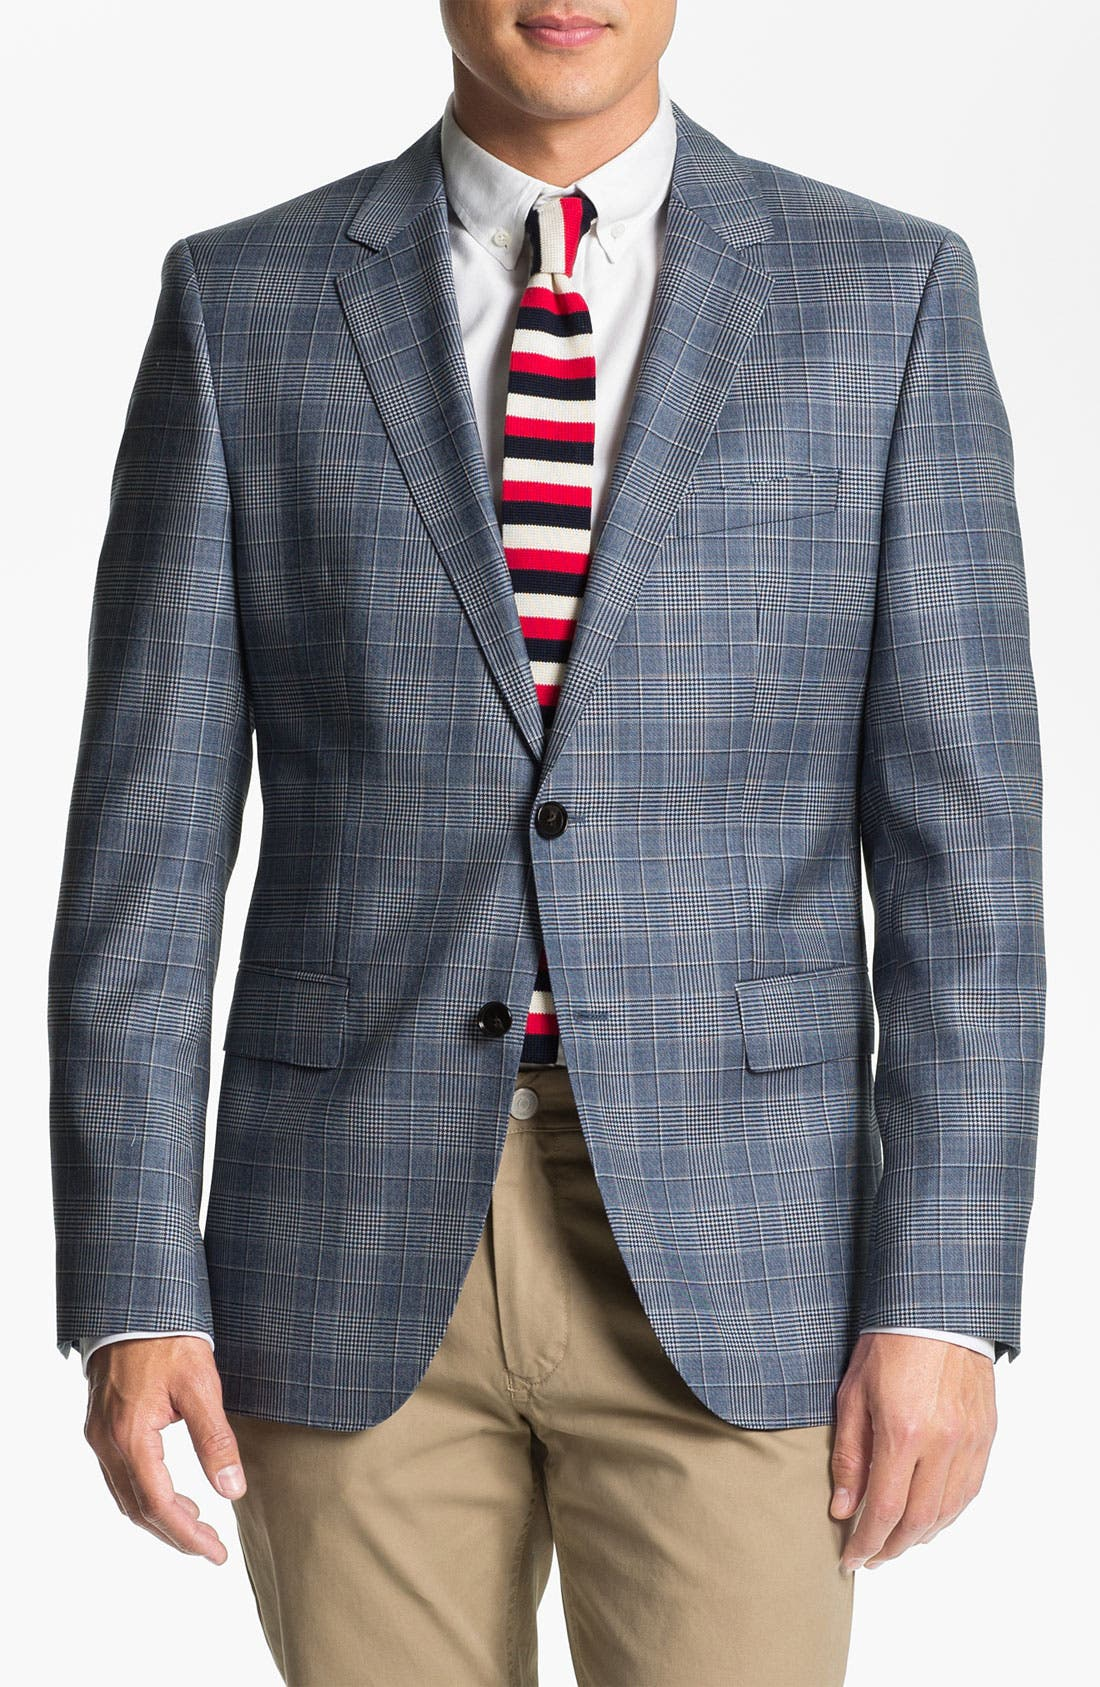 Alternate Image 1 Selected - BOSS Black 'James' Trim Fit Plaid Sportcoat